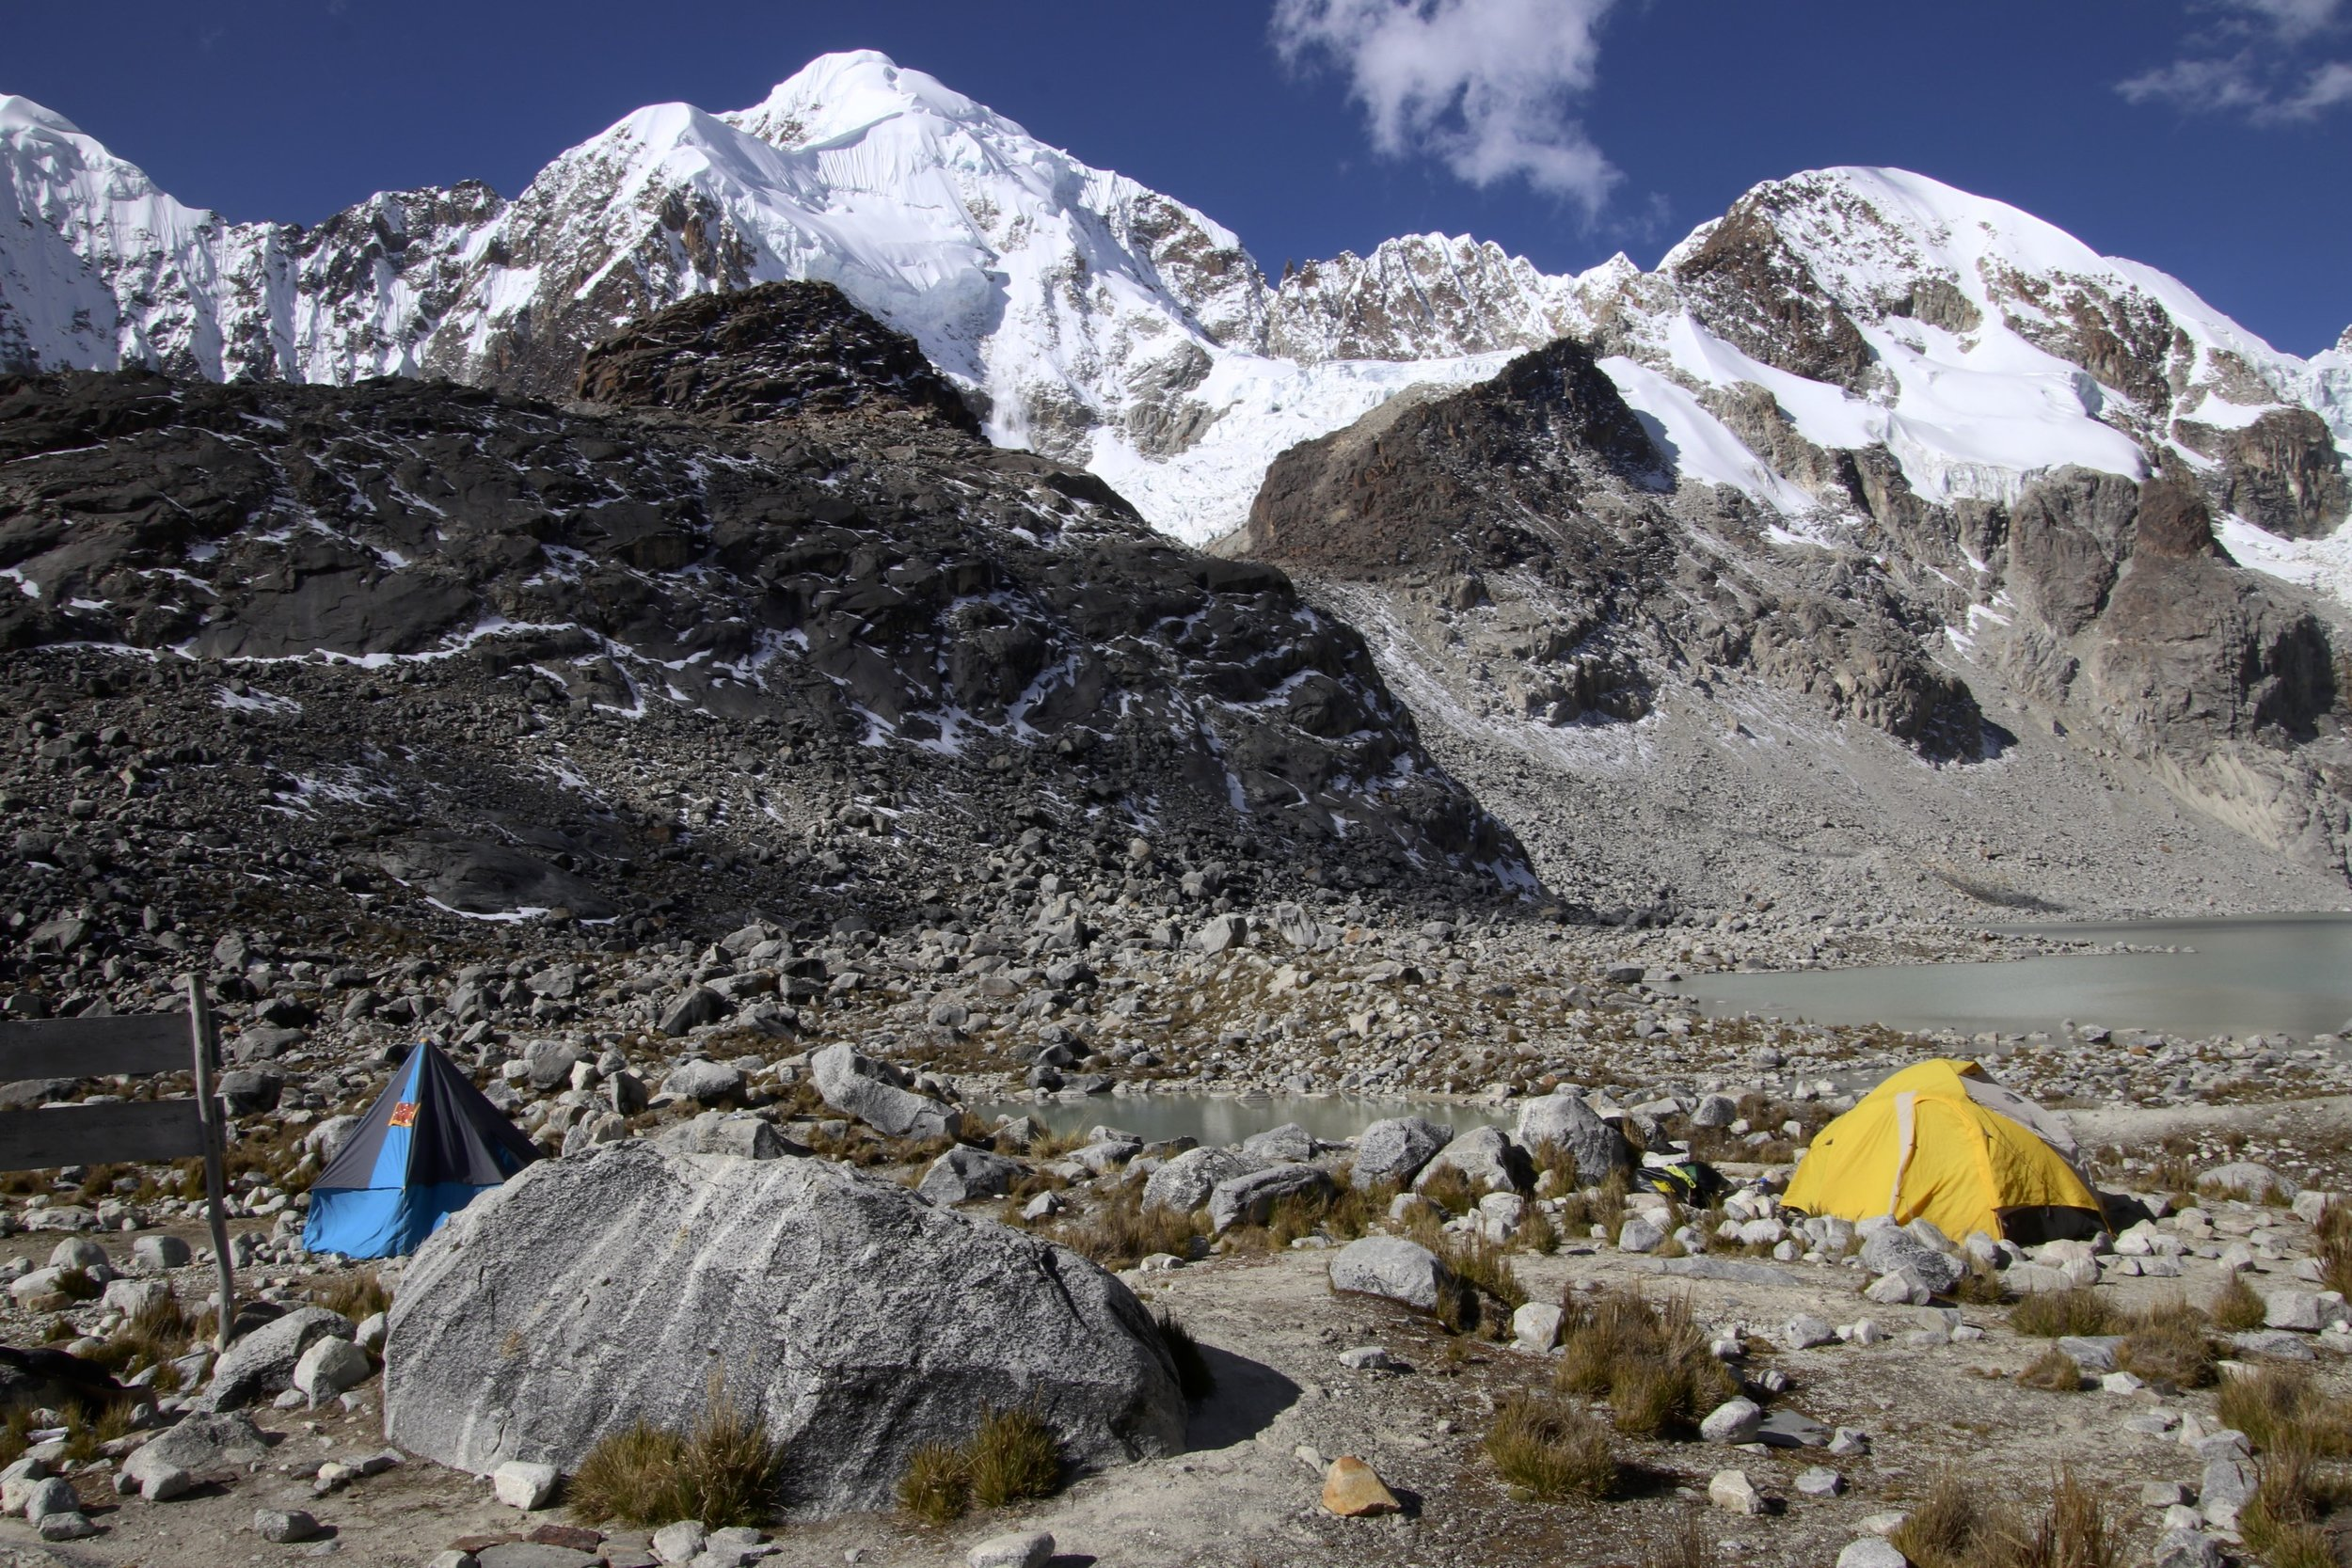 Our camp at Laguna Glaciar at 5,100m. This is a very beautiful spot with high Andes all around. This is how far we made it in 2010. I always wanted to come back and explore more of this fantastic corner of the Cordillera Real.